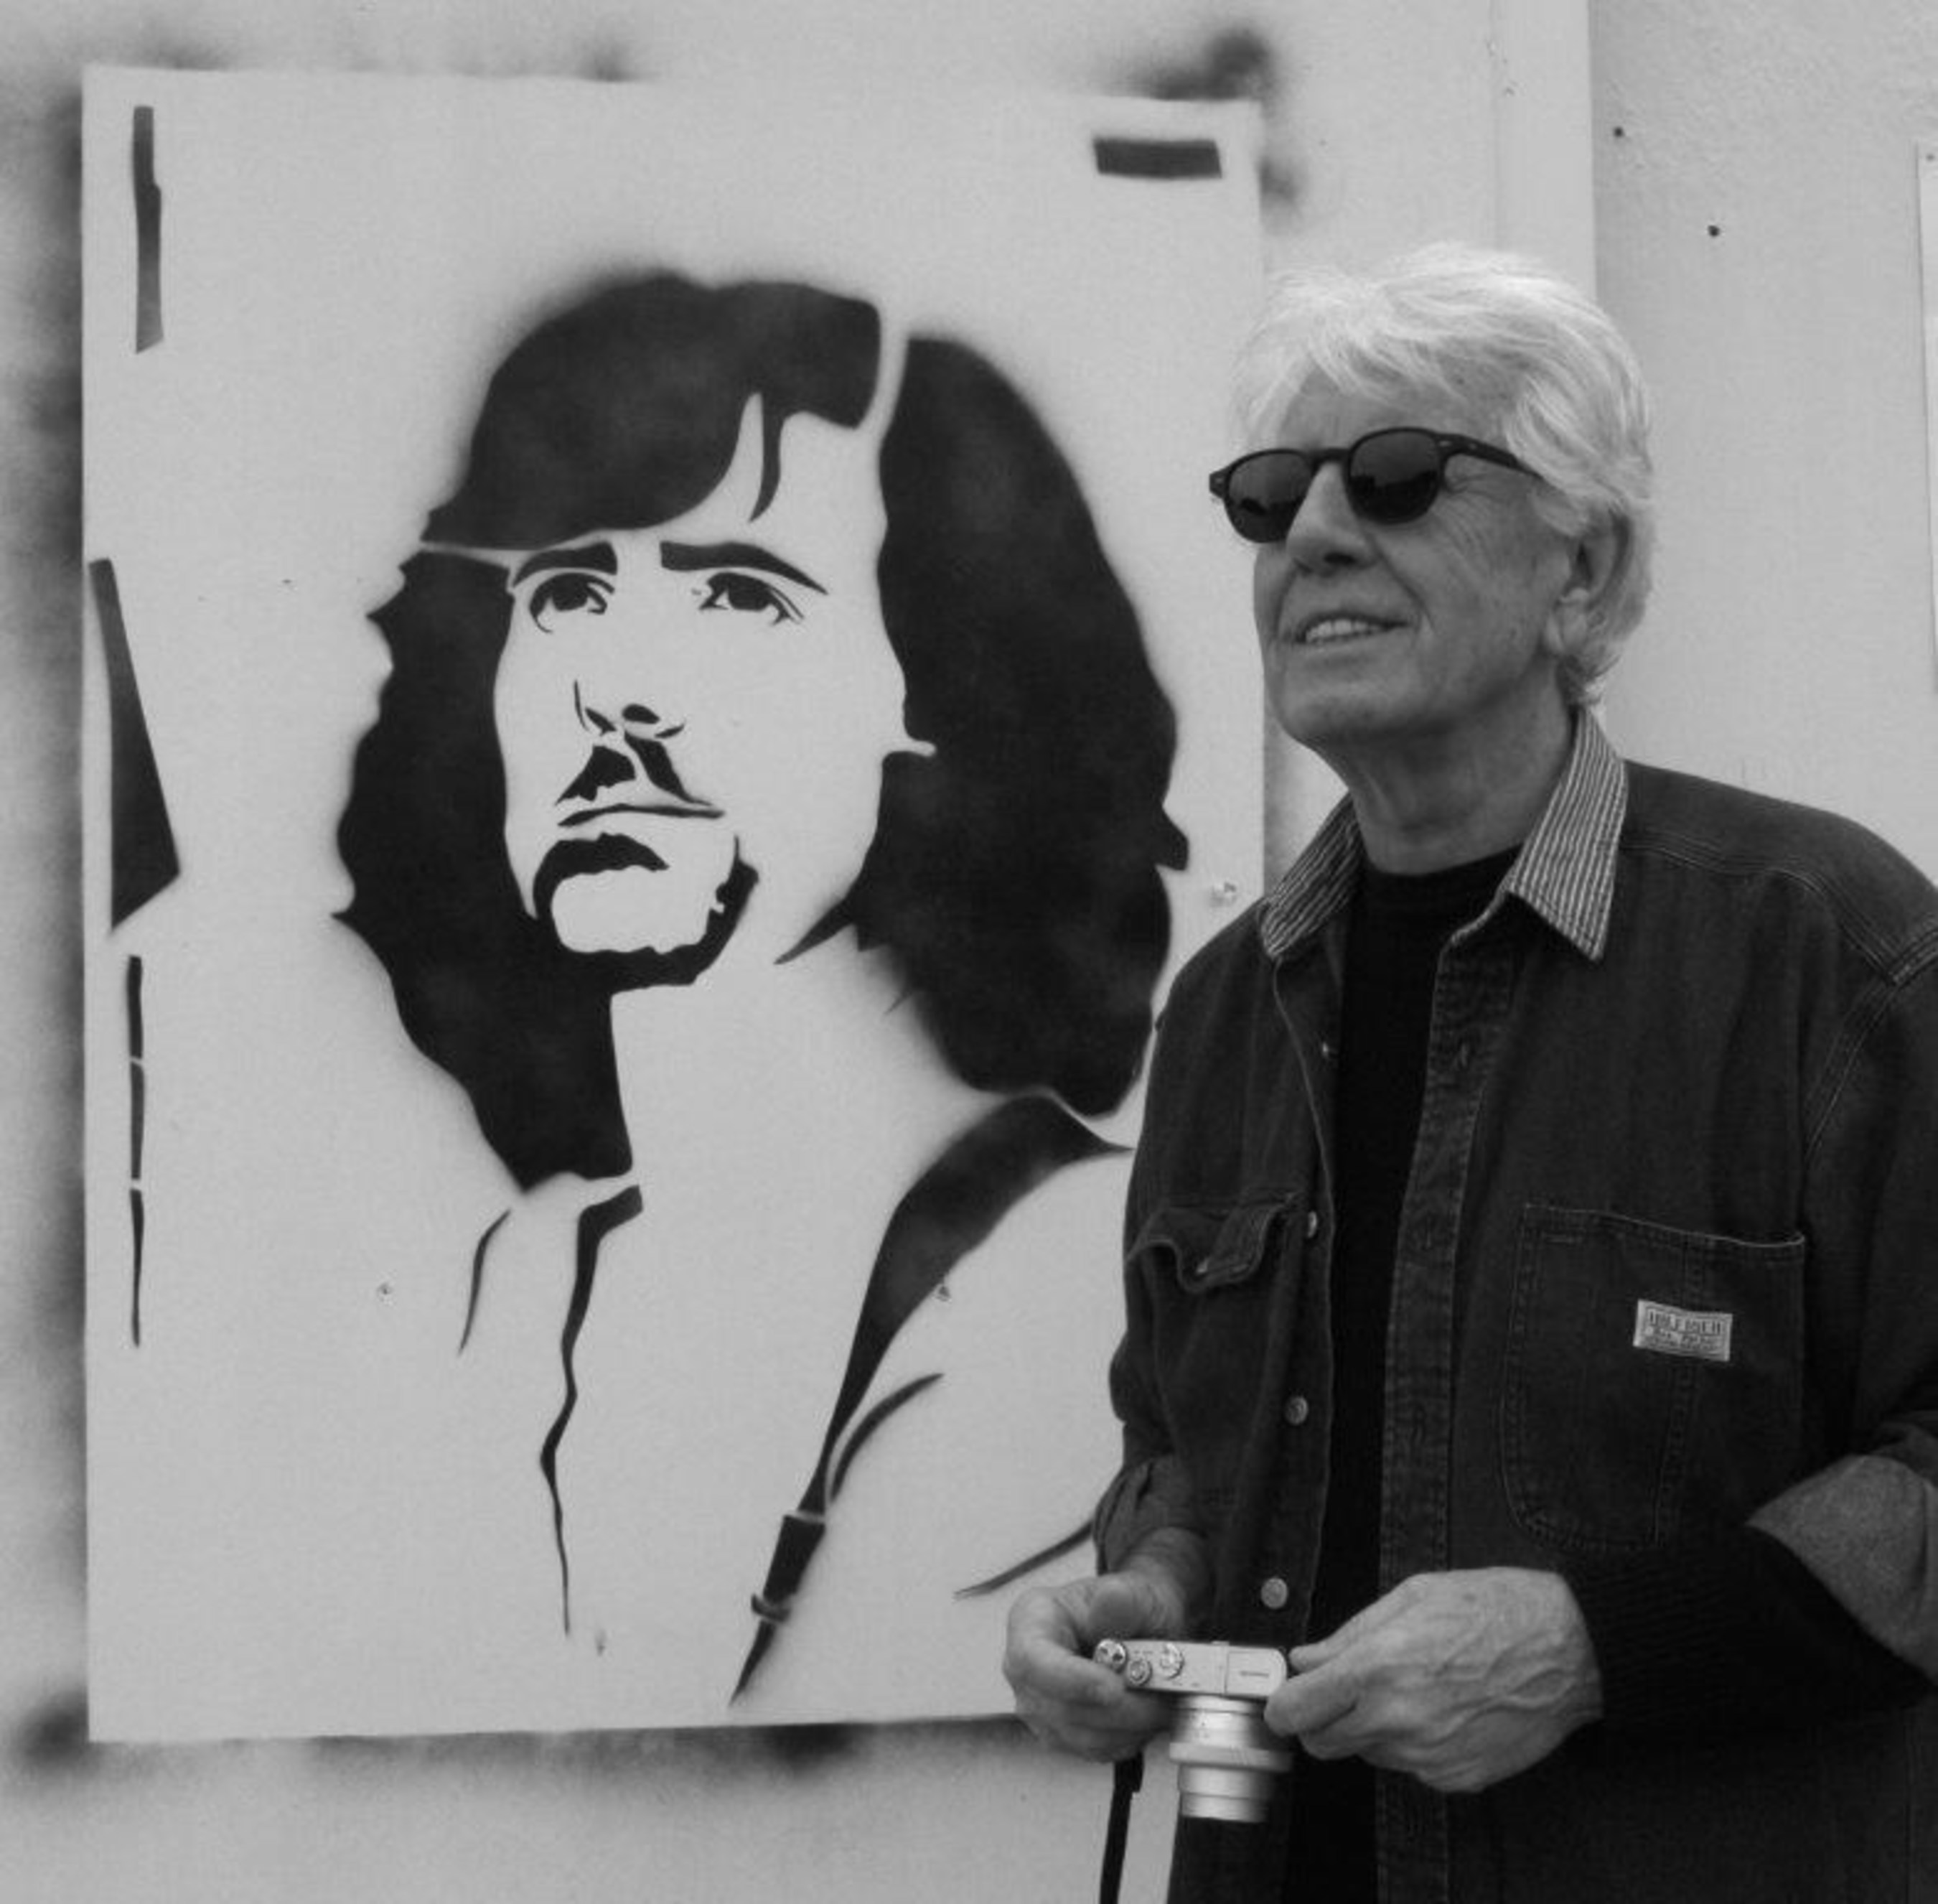 Graham Nash Honored with 'Music for Life' Award at 2016 NAMM Show